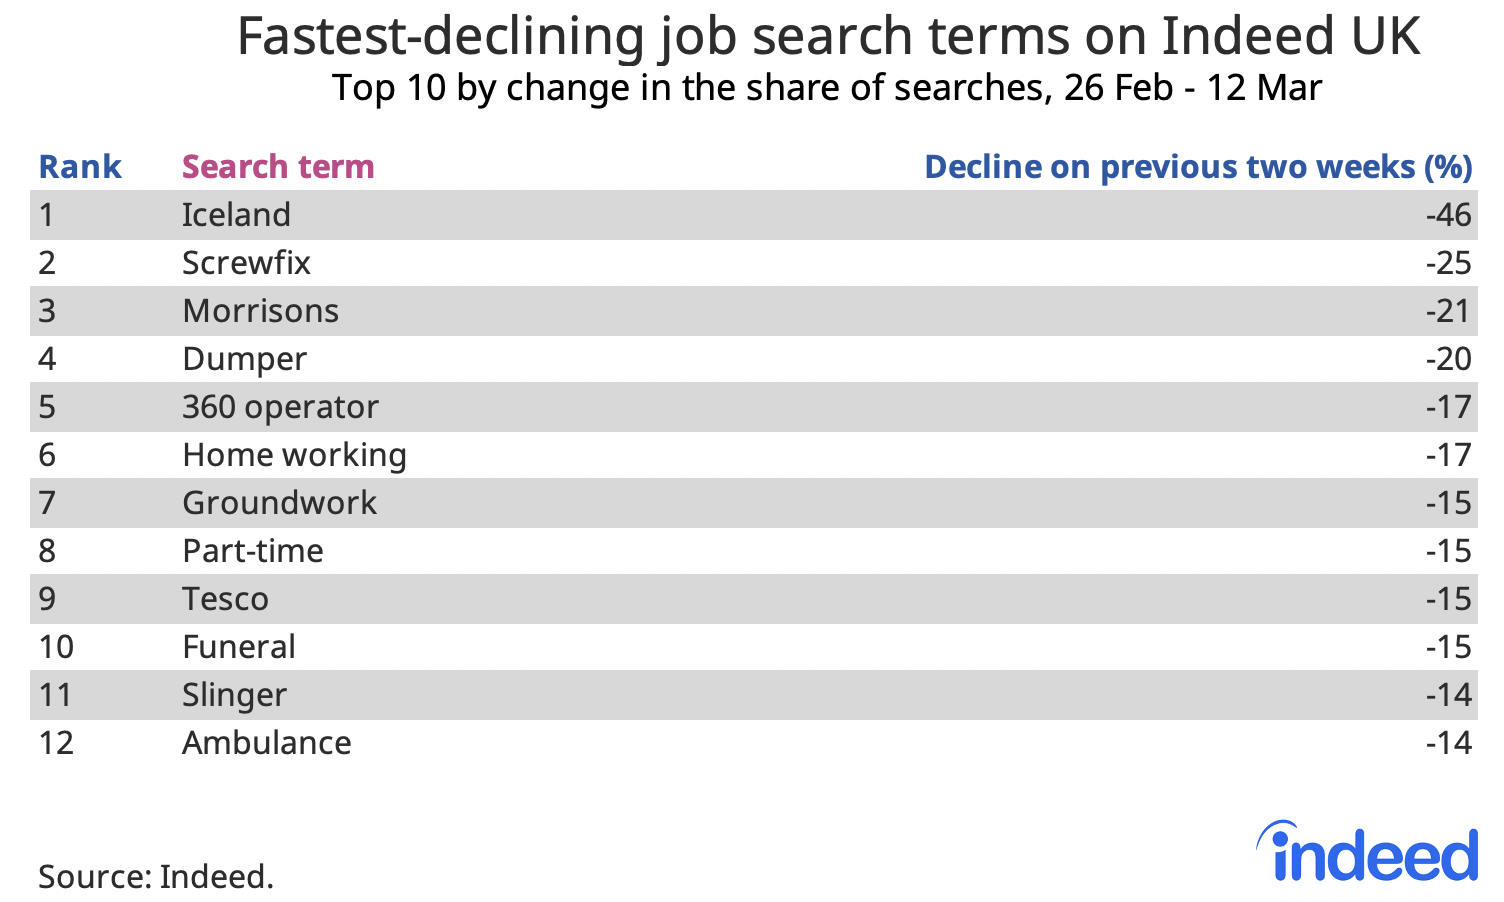 Table showing fastest-declining job search terms on Indeed UK